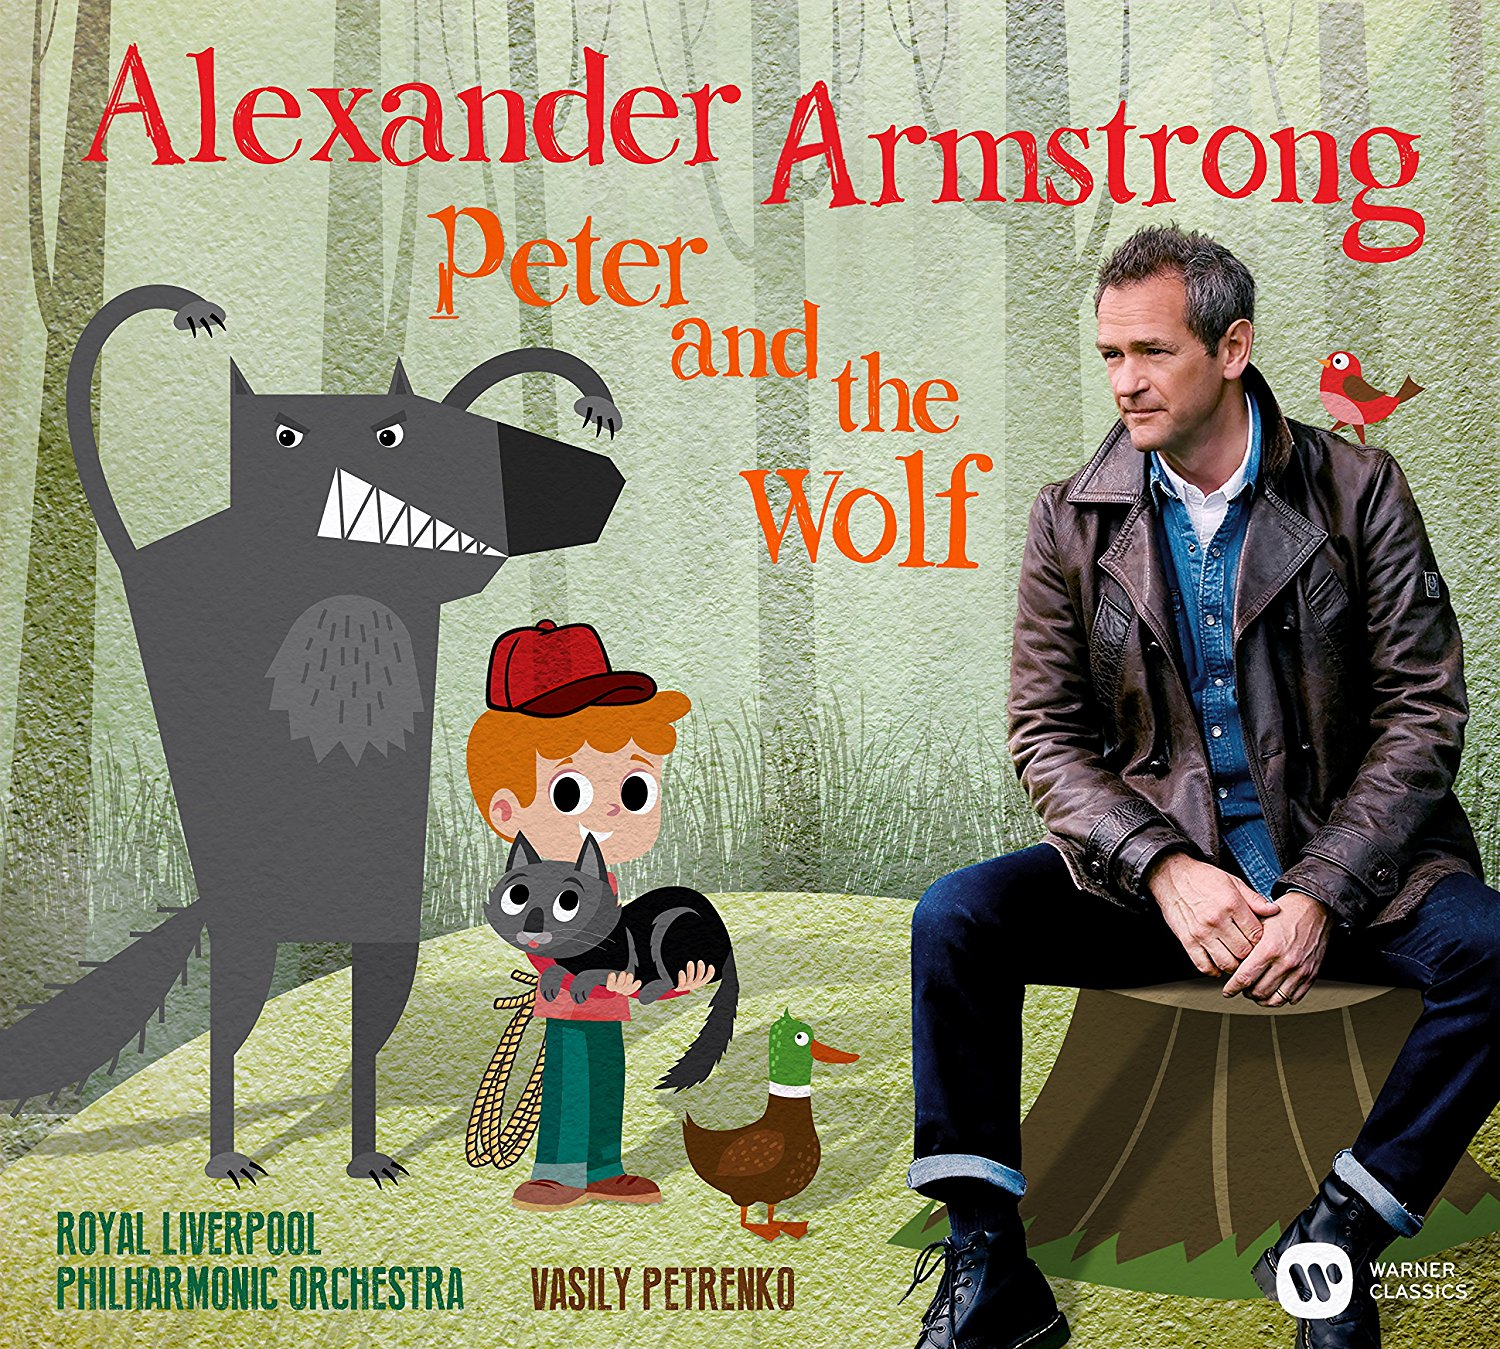 Alexander Armstrong Peter and the Wolf